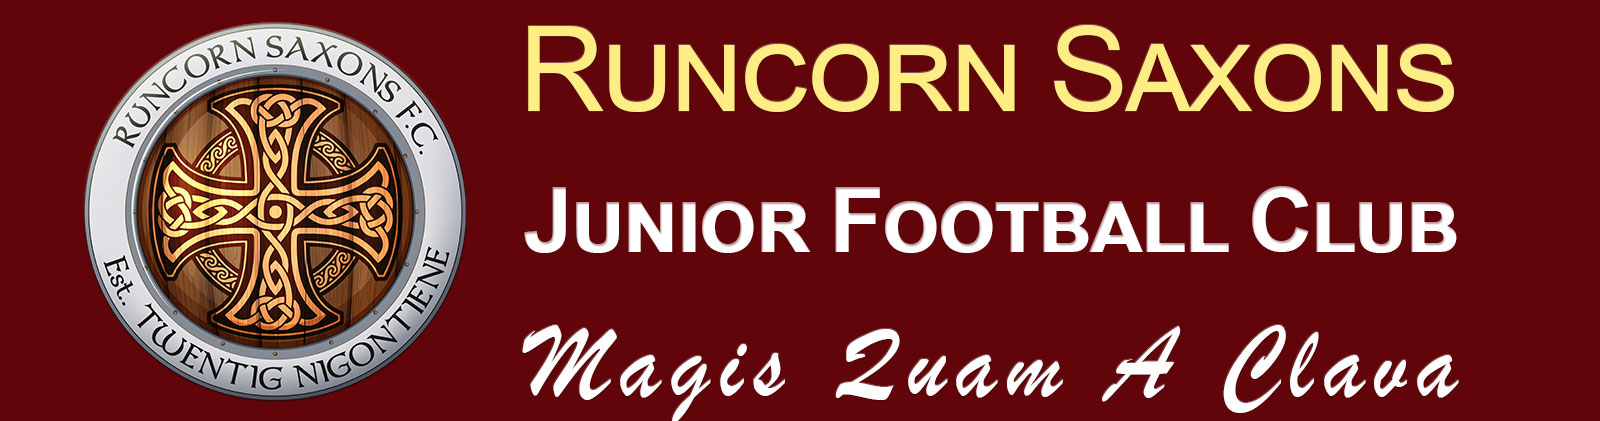 Runcorn Saxons Junior Football Club logo